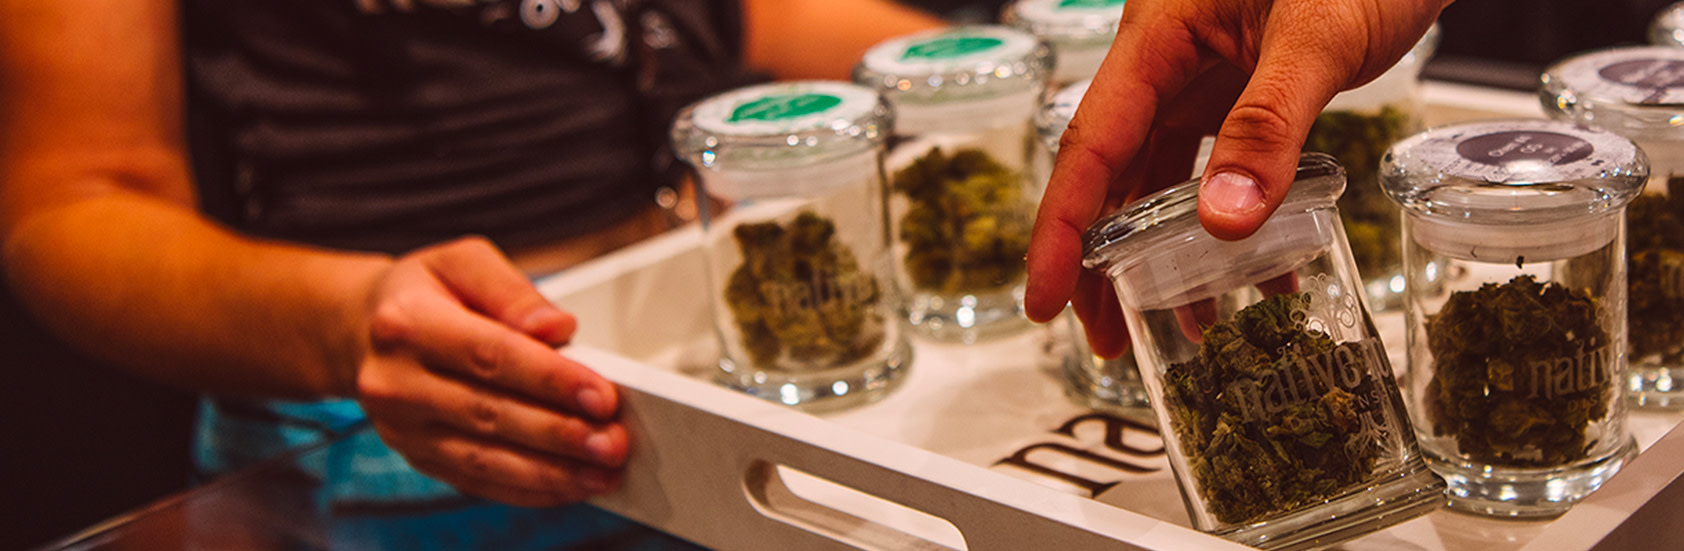 A Tray of Native Roots Dispensary Weed